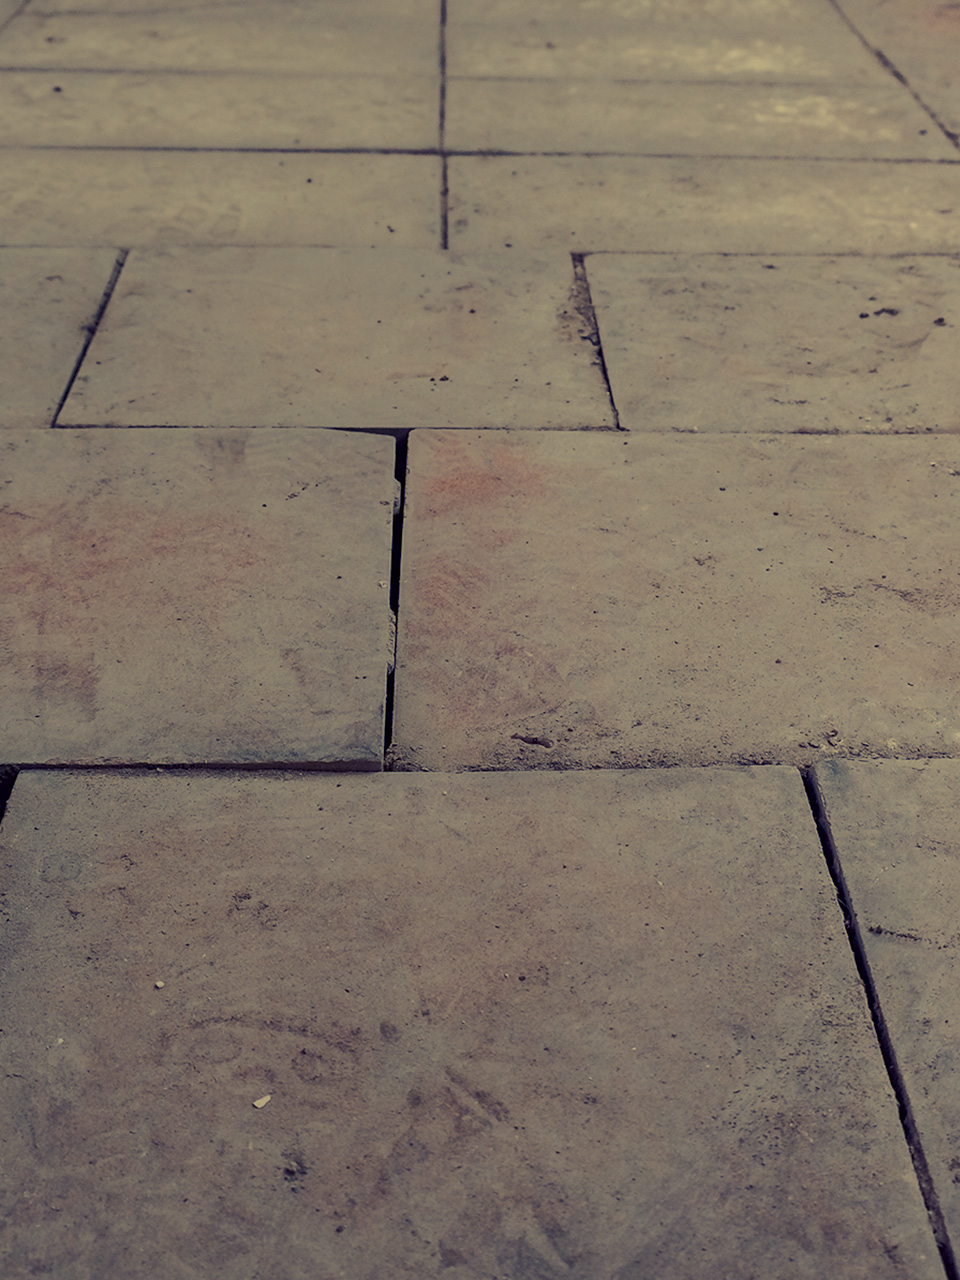 How To Safely Remove Asbestos Floor Tiles